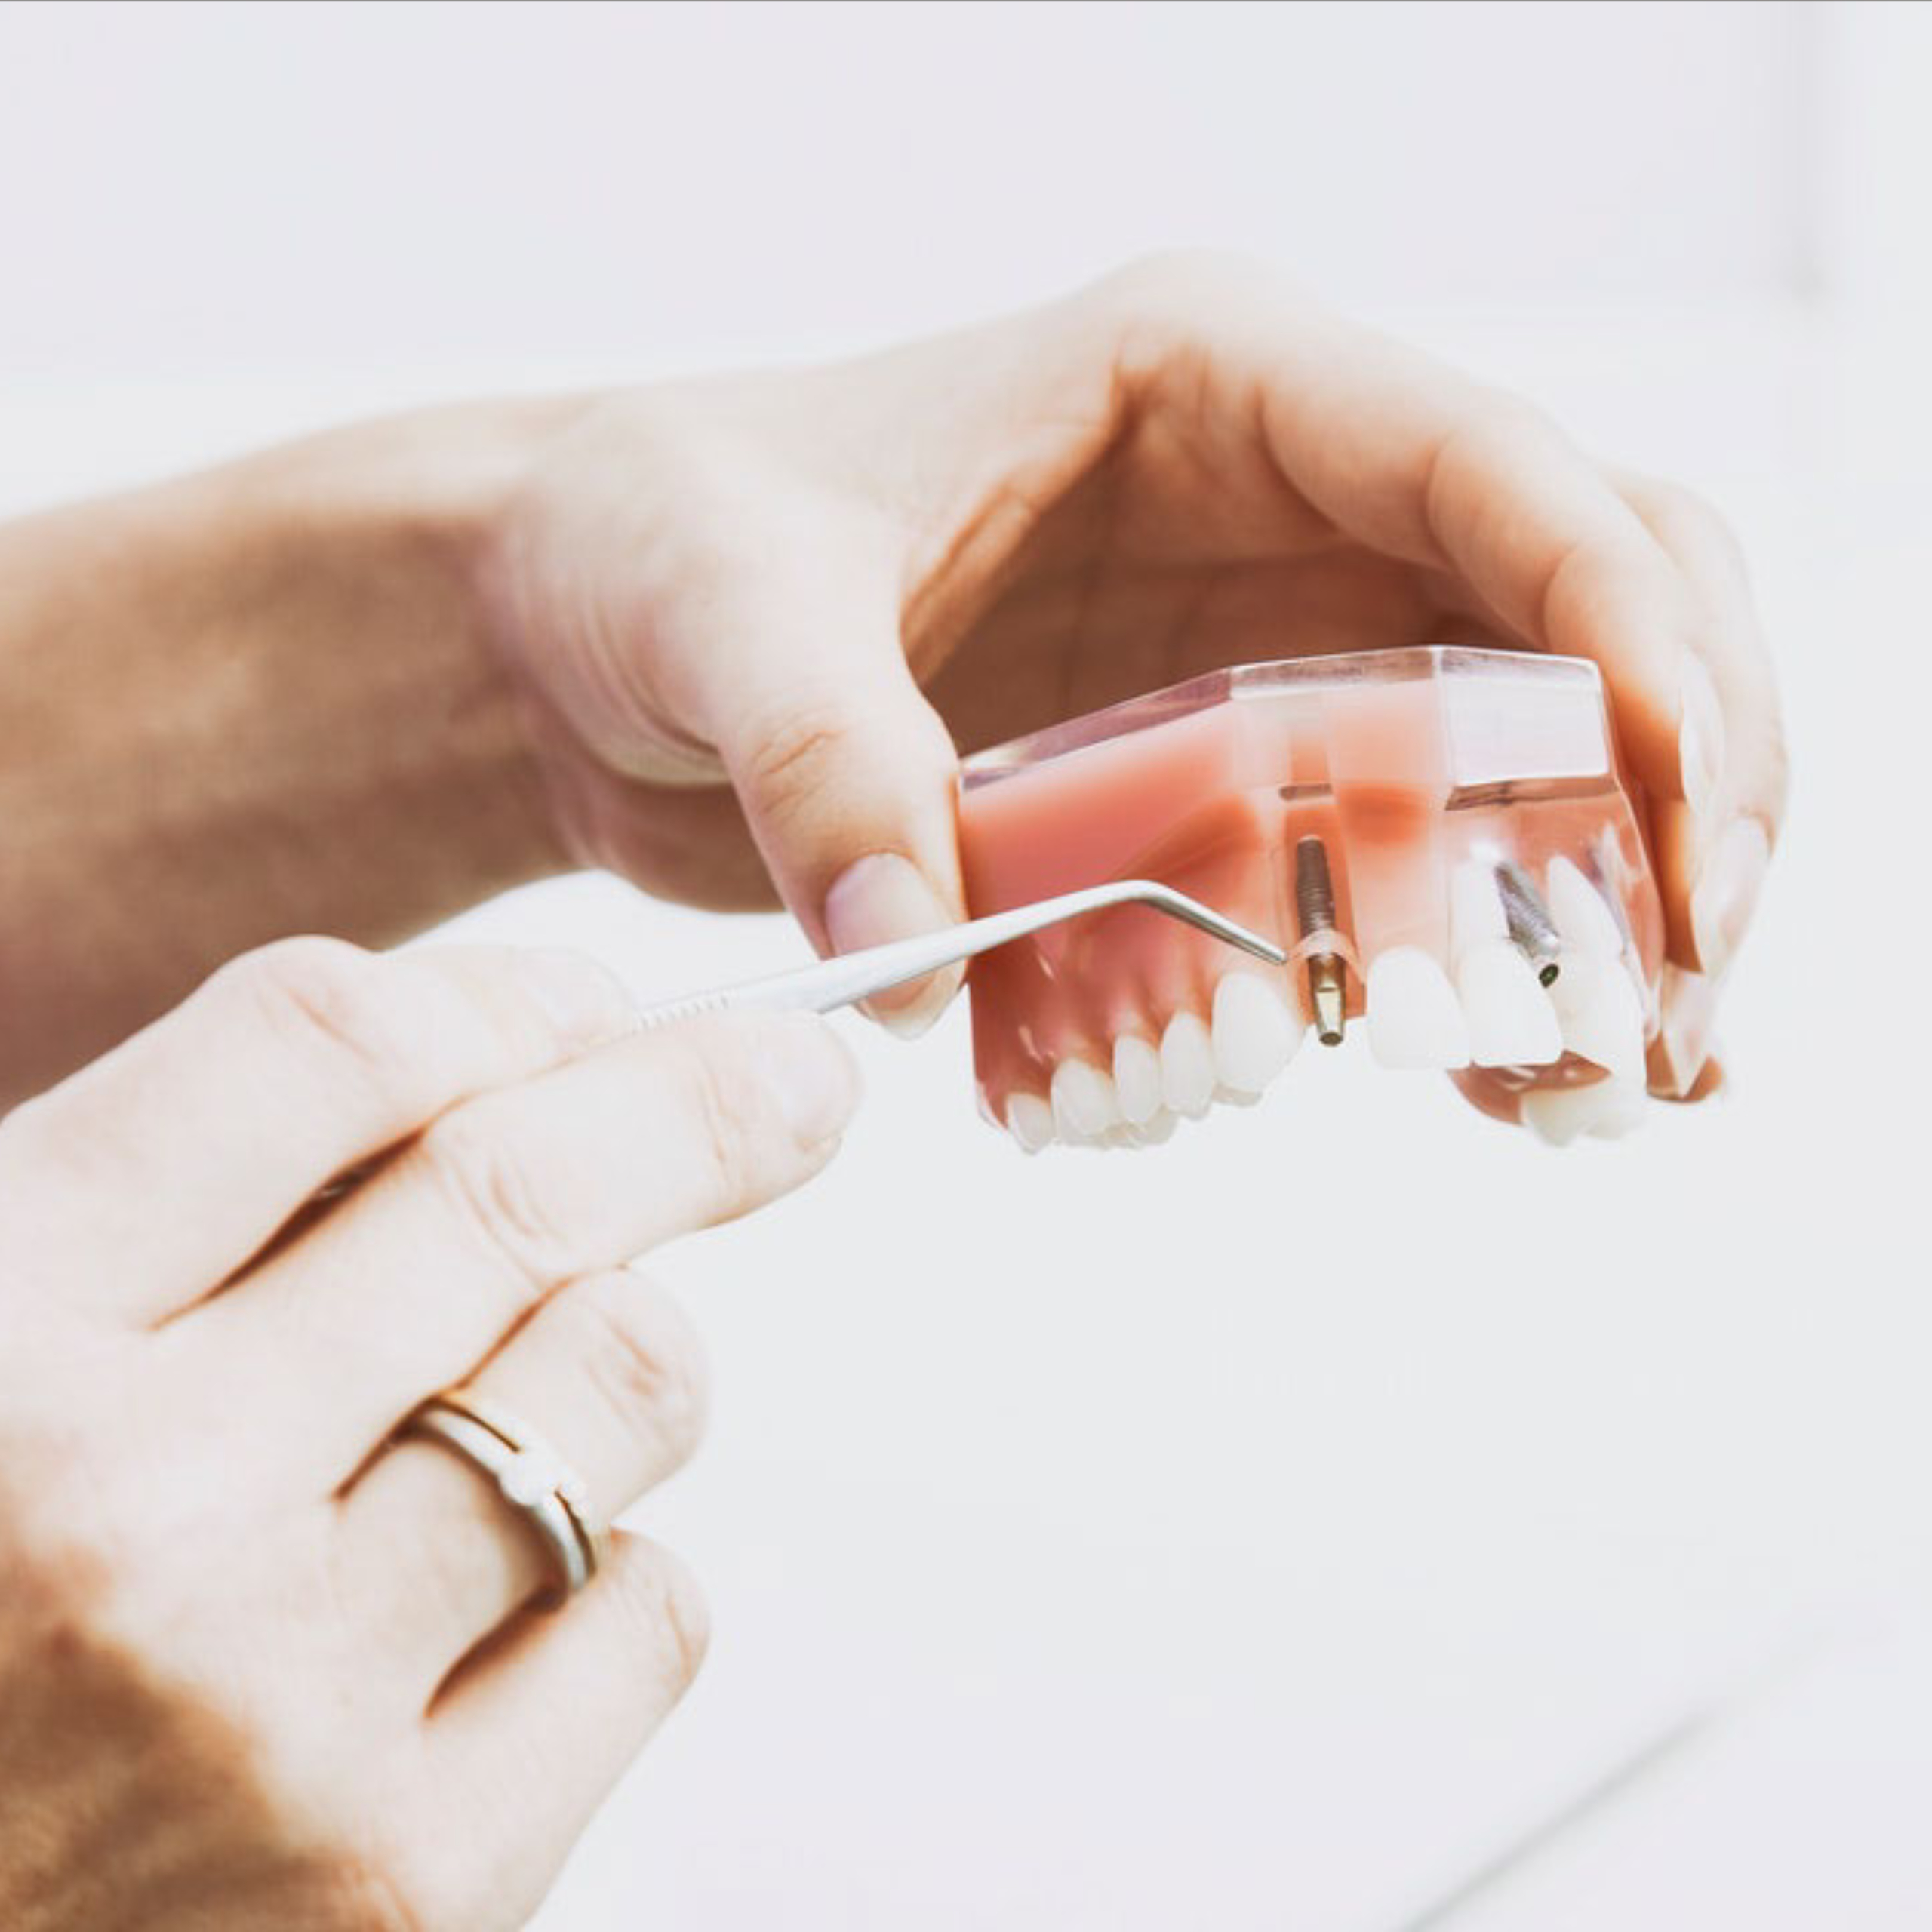 Dentist examining the root of a tooth for a cavity.